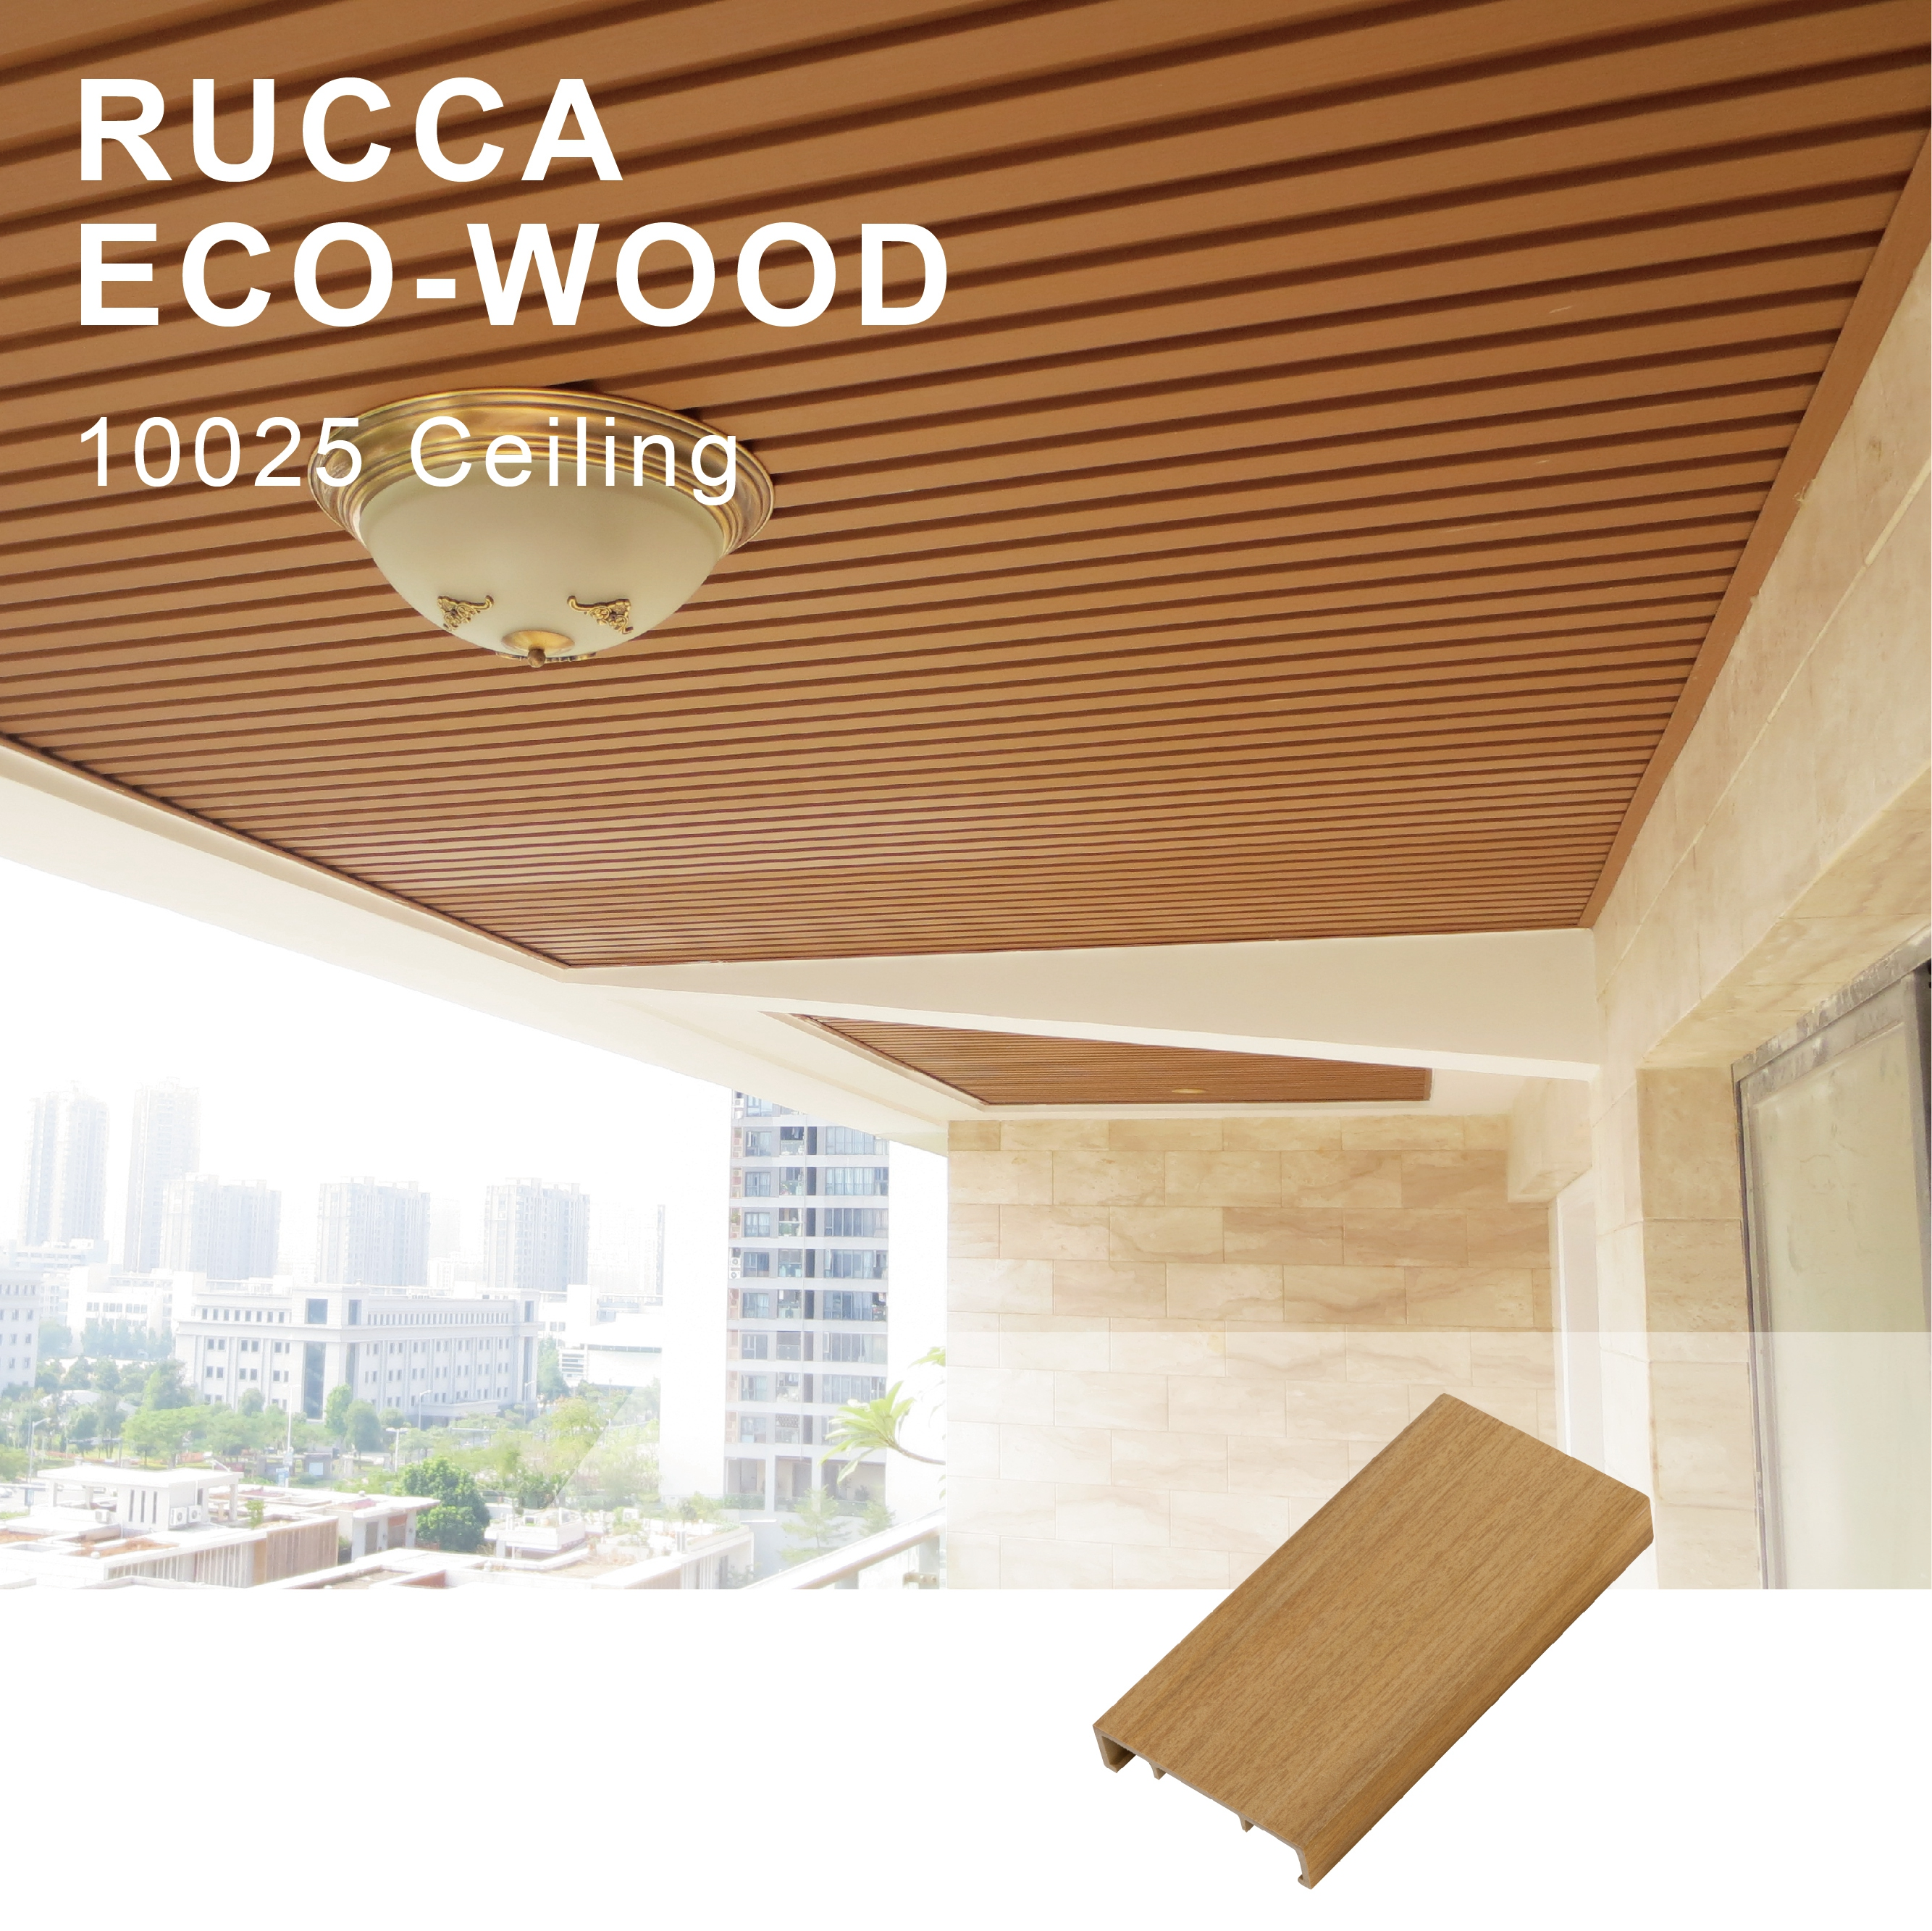 Foshan Rucca WPC Modern Wood Ceiling For Interior Decoration, pvc ceiling panel 100*25mm Guangdong building materials